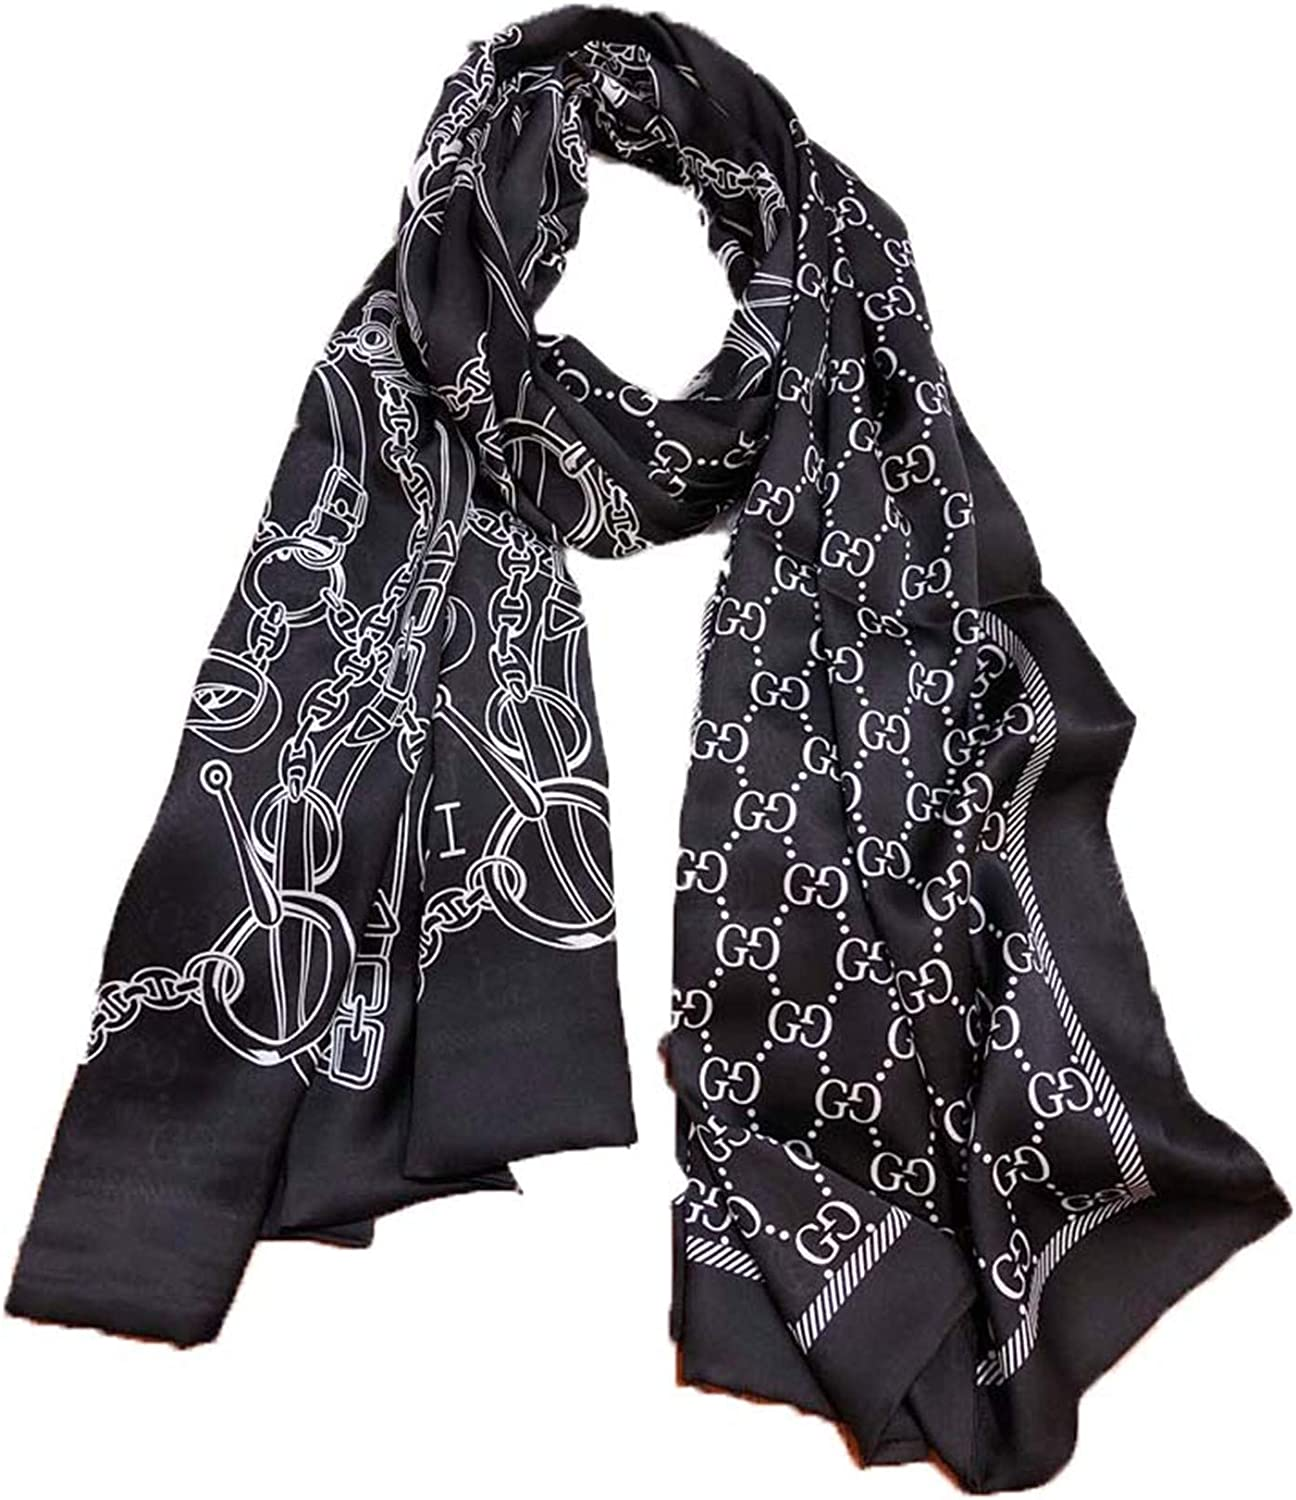 Fashion luxury silk scarves are suitable for women and men in four seasons. Luxury gifts are comfortable to wear anywhere (Z31)